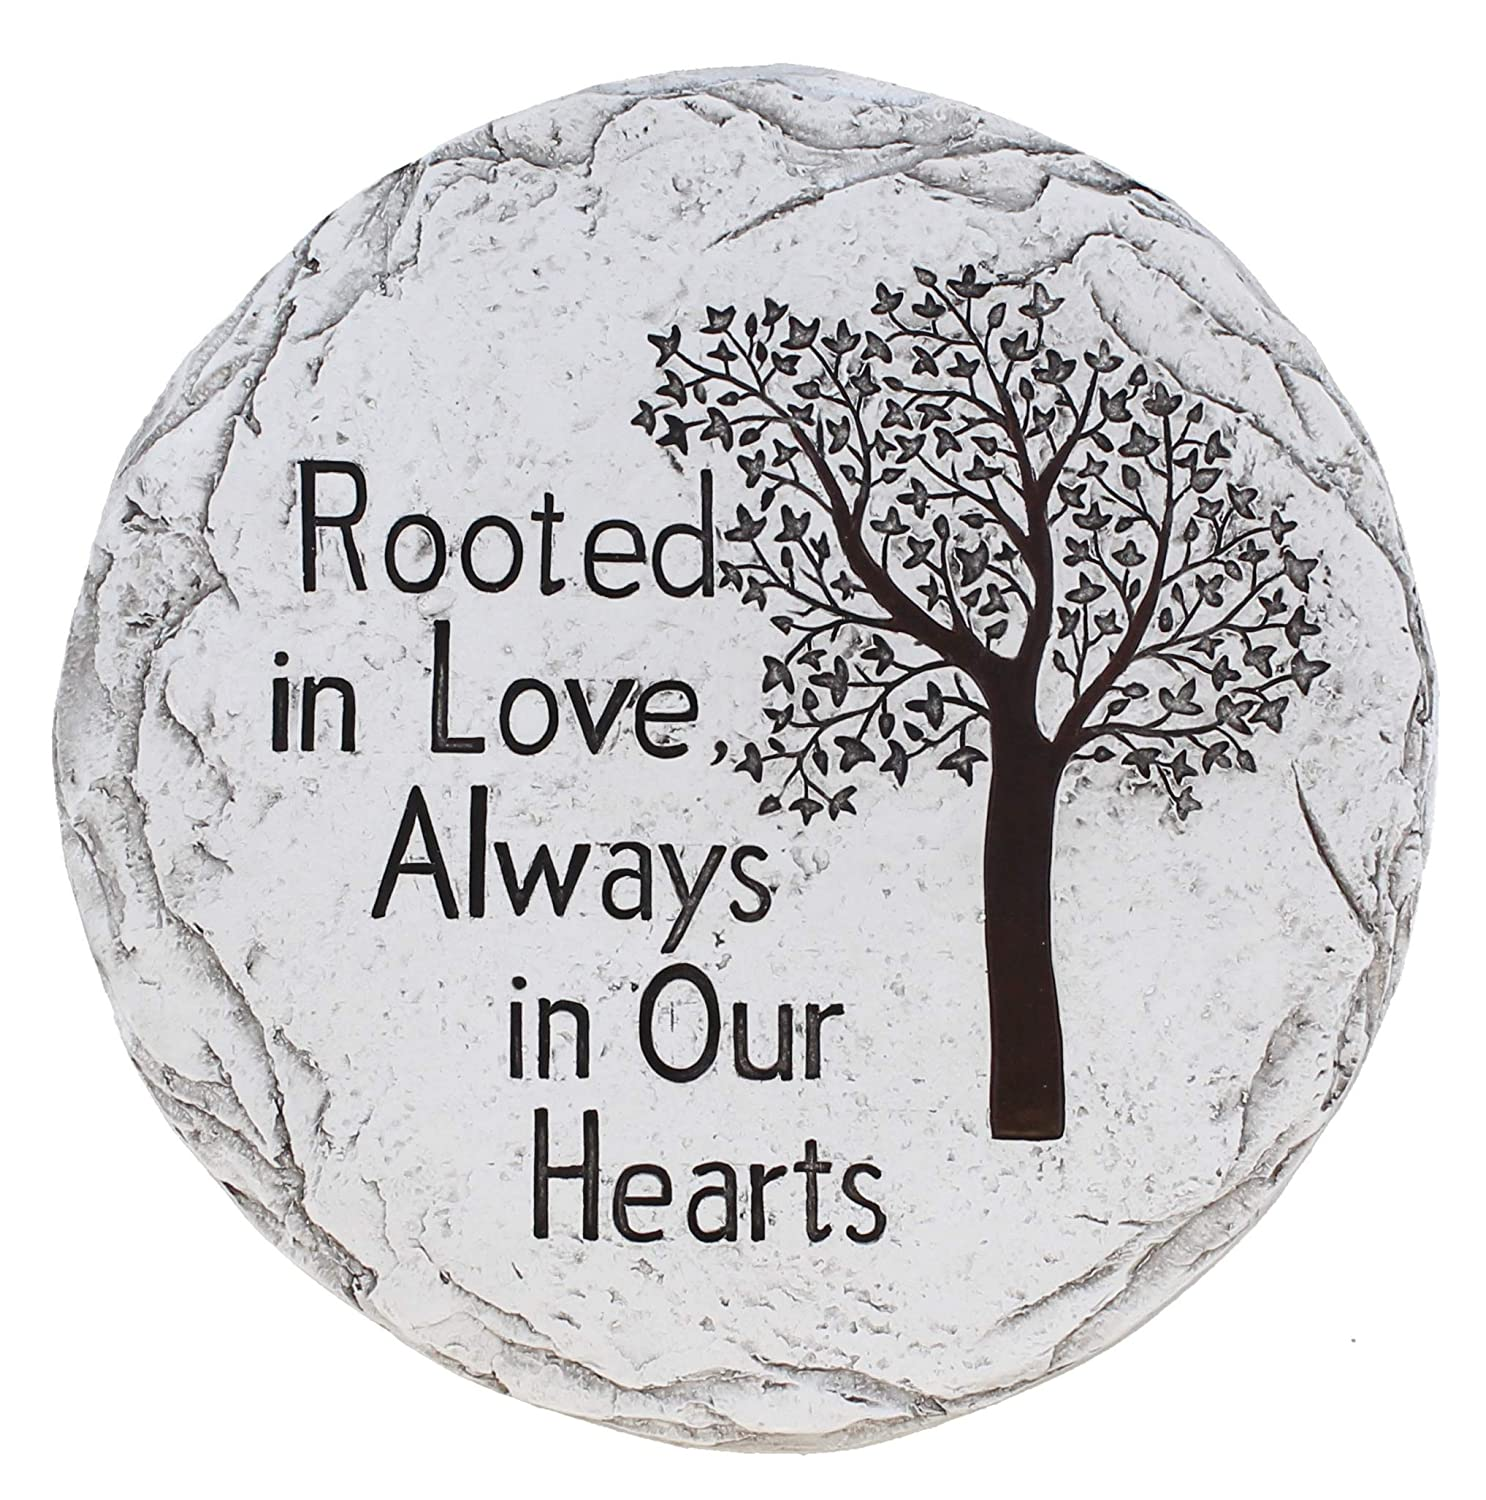 Old River Outdoors Garden Memorial Stepping Stone - Rooted in Love, Always in Our Hearts - Tree of Life